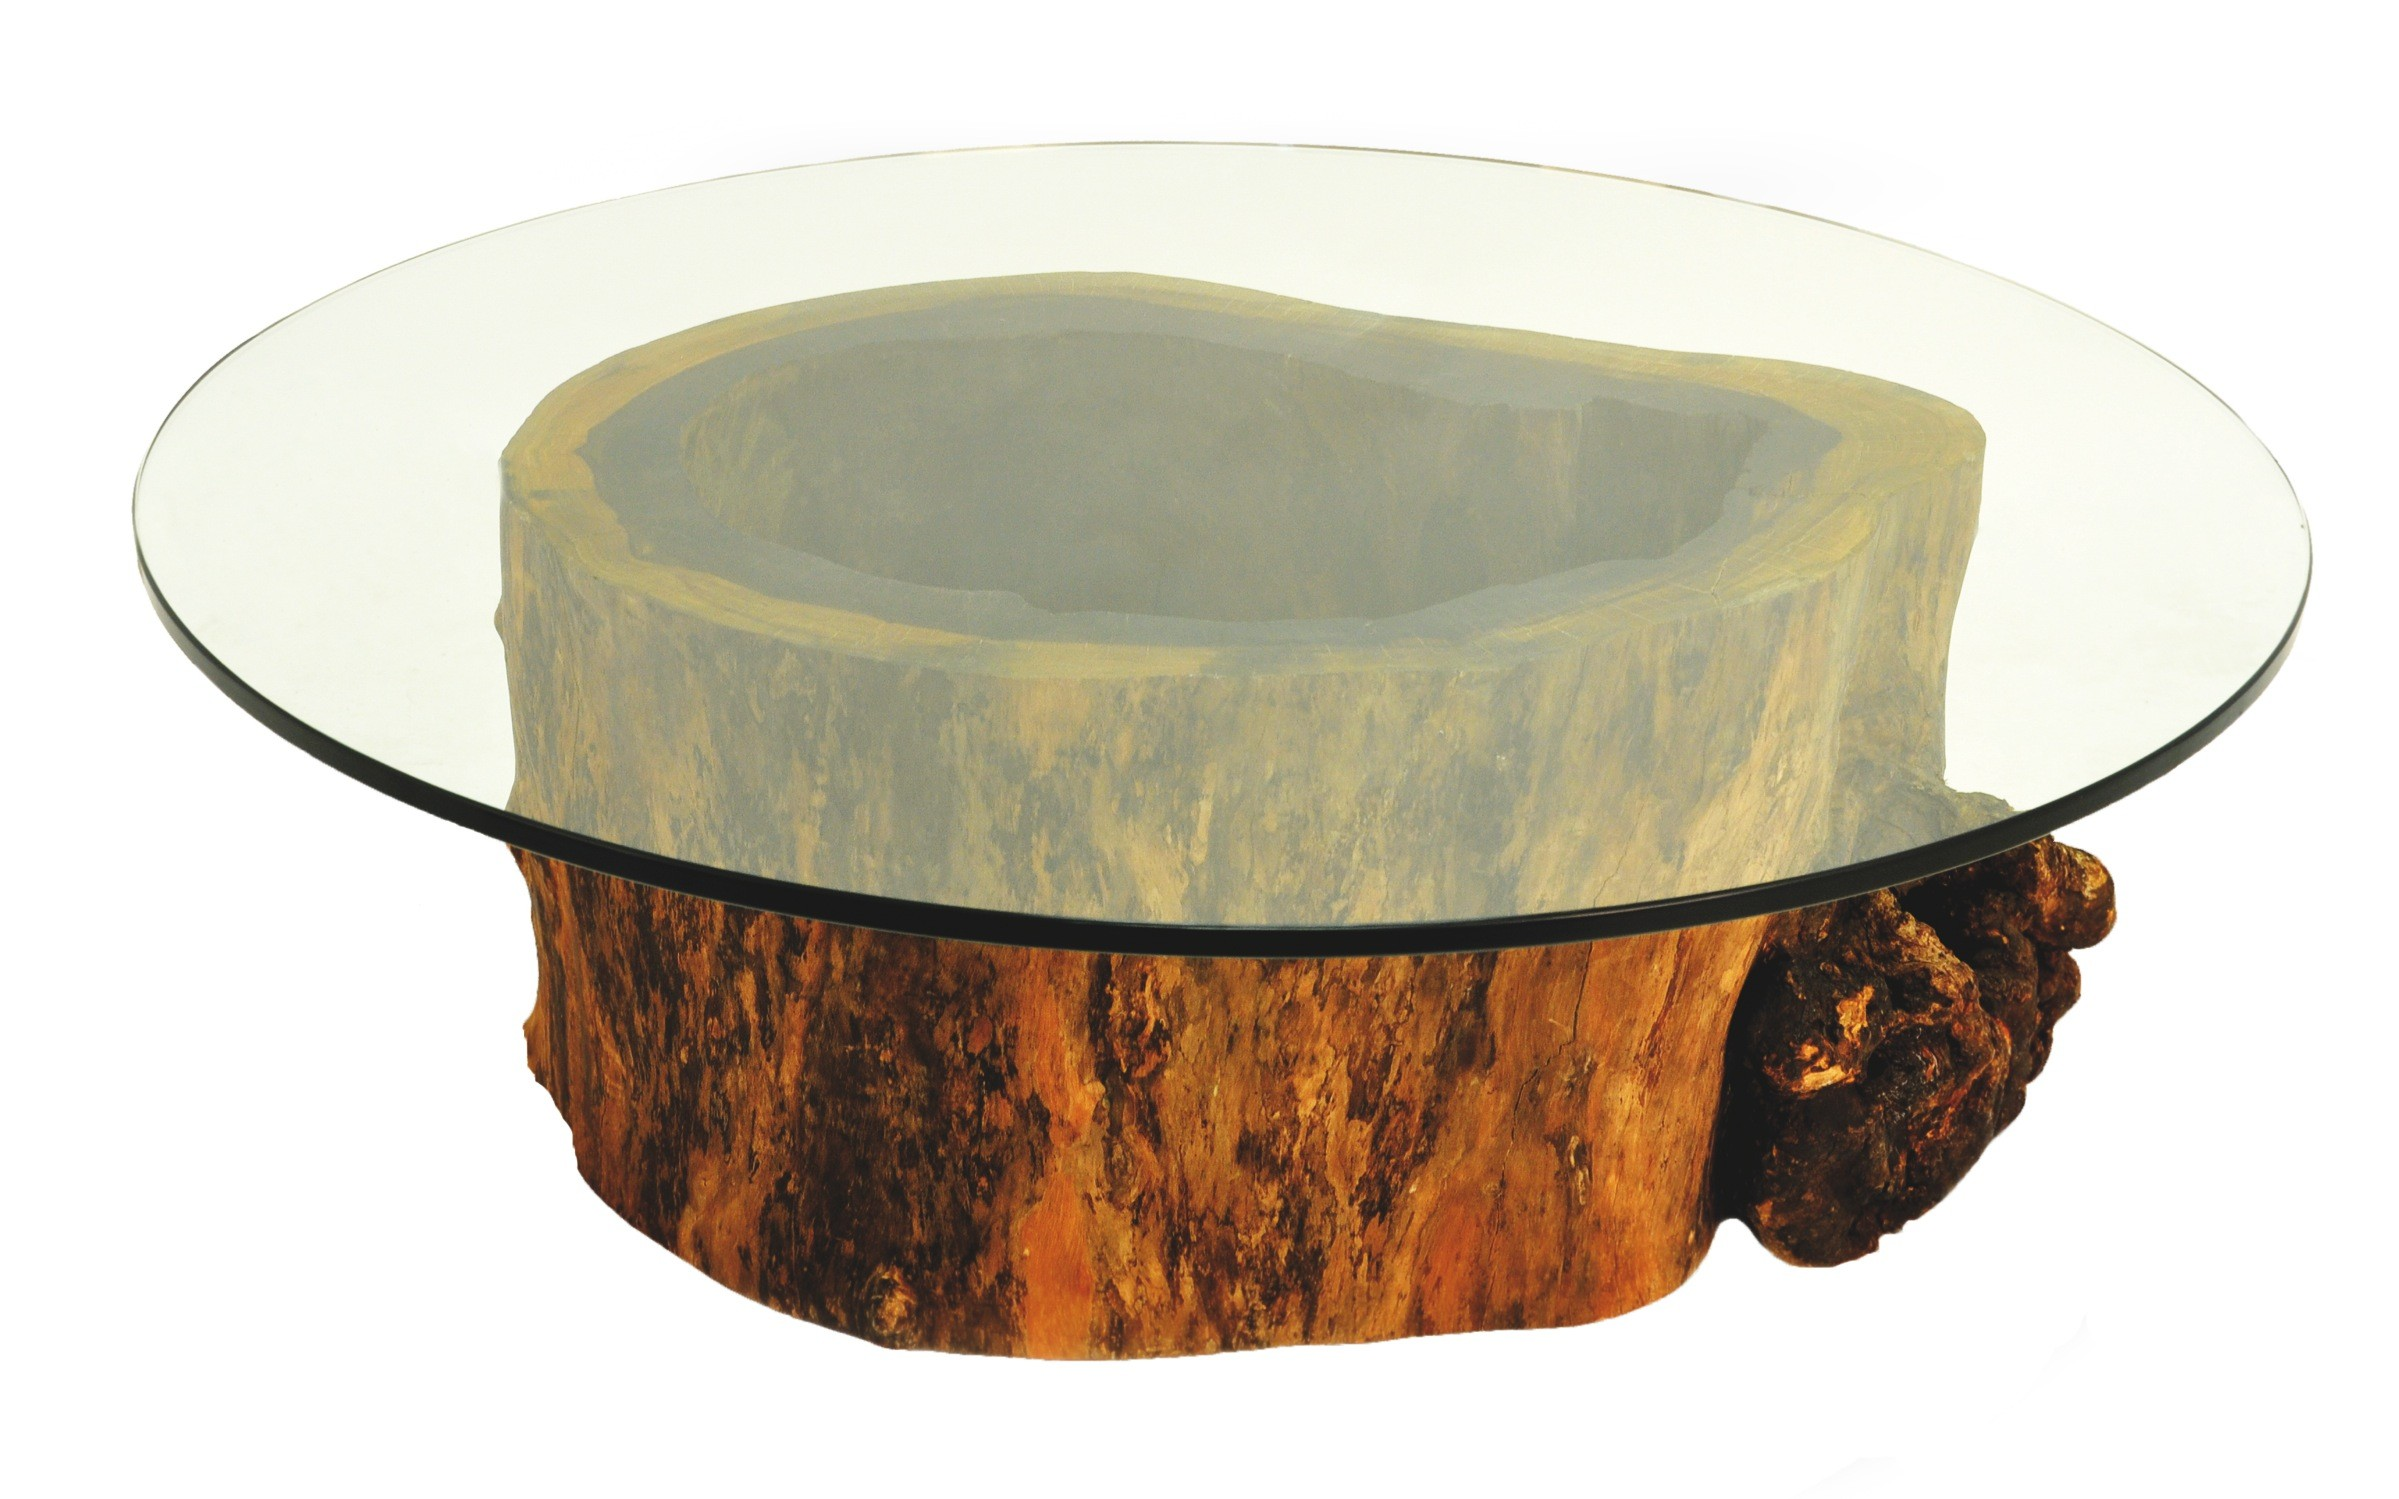 Modern Rounded Glass Coffee Table With Rustic Round Glass Top Coffee Table With Wood Base Glass Top Dining Tables With Wood Base (Image 3 of 10)